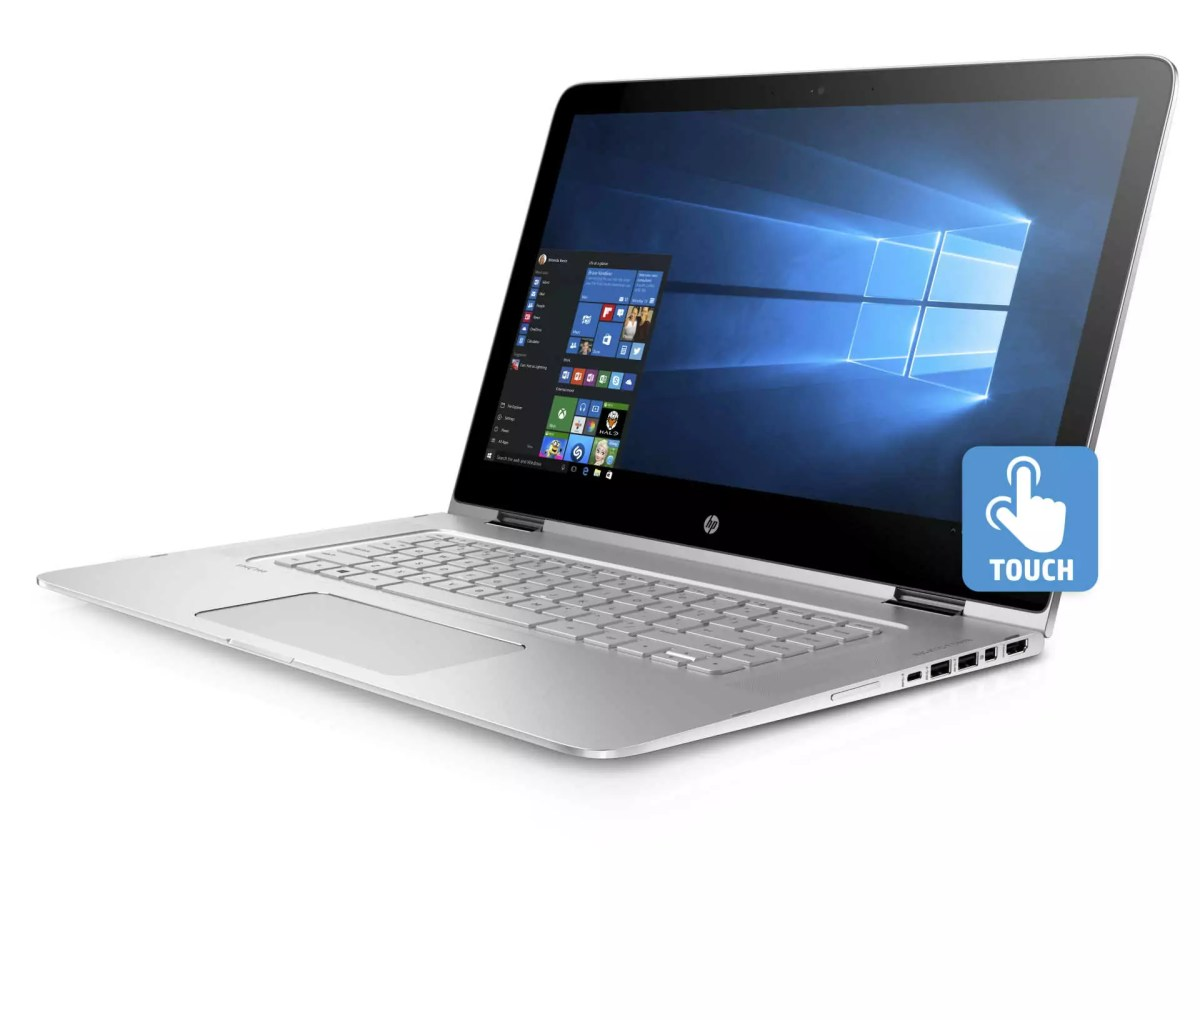 HP Spectre x360 15_left facing